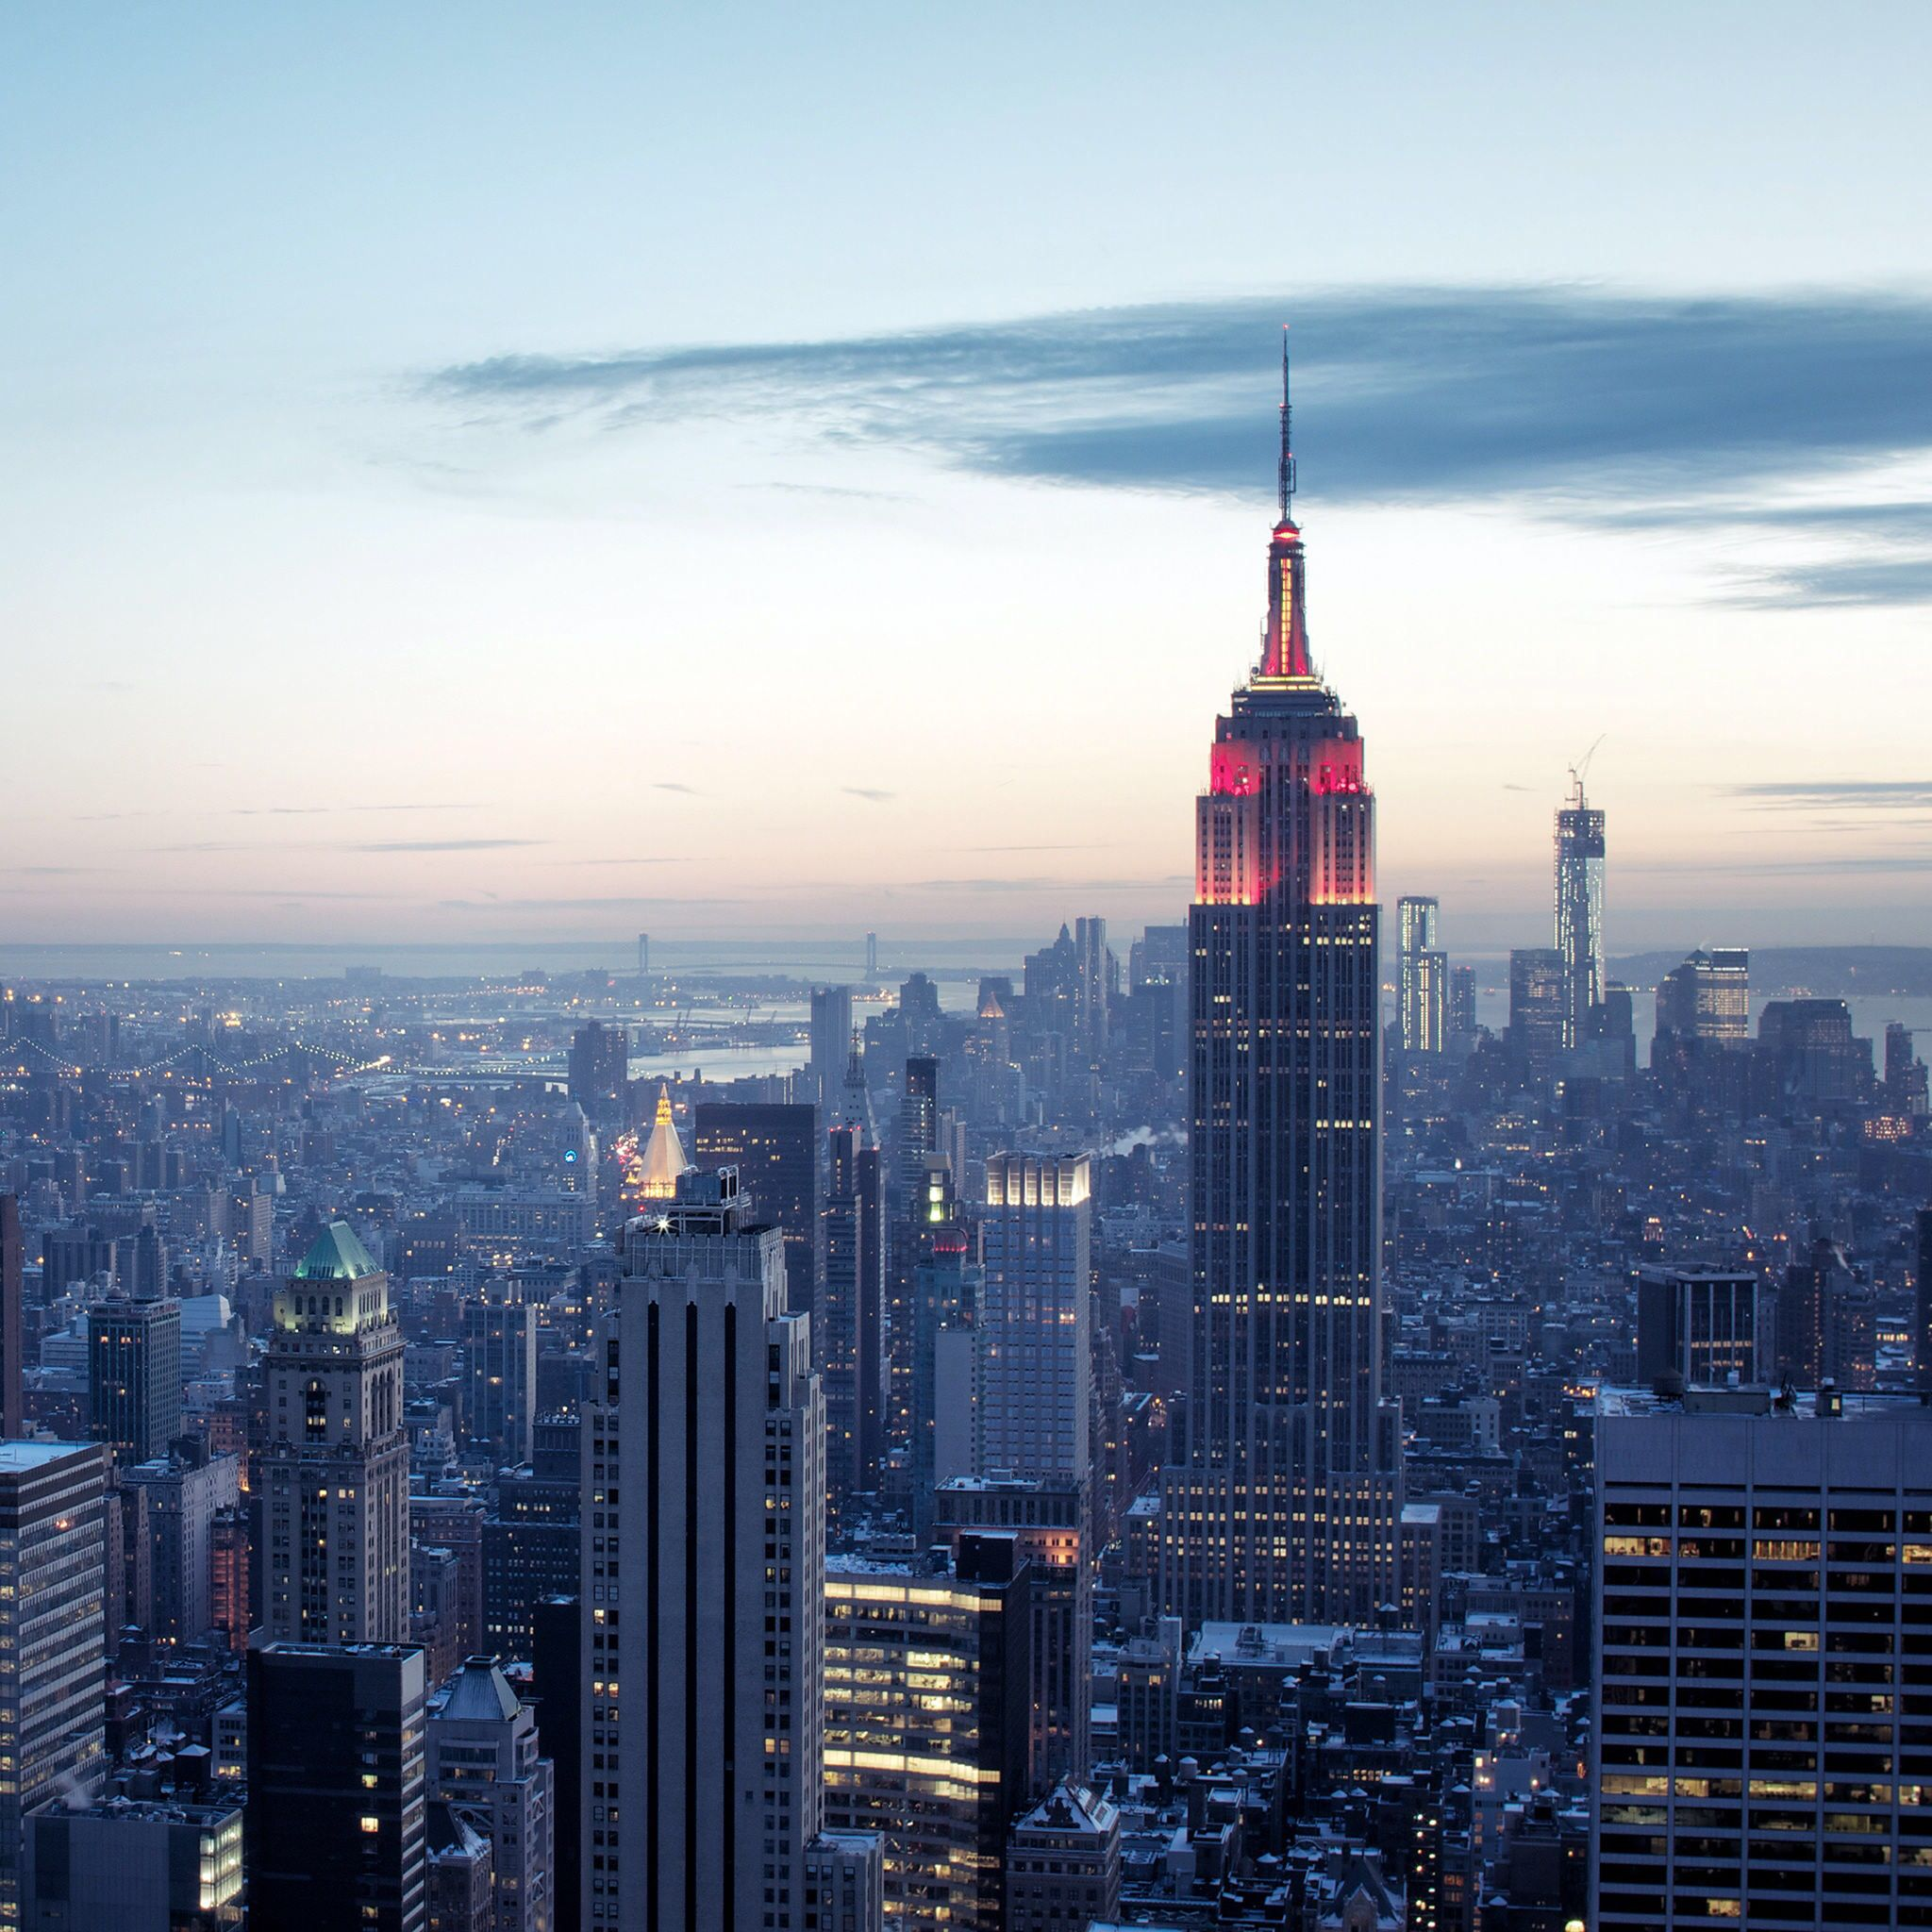 Pin By Lara Temel On G4l Empire State Building Empire State Empire State Of Mind